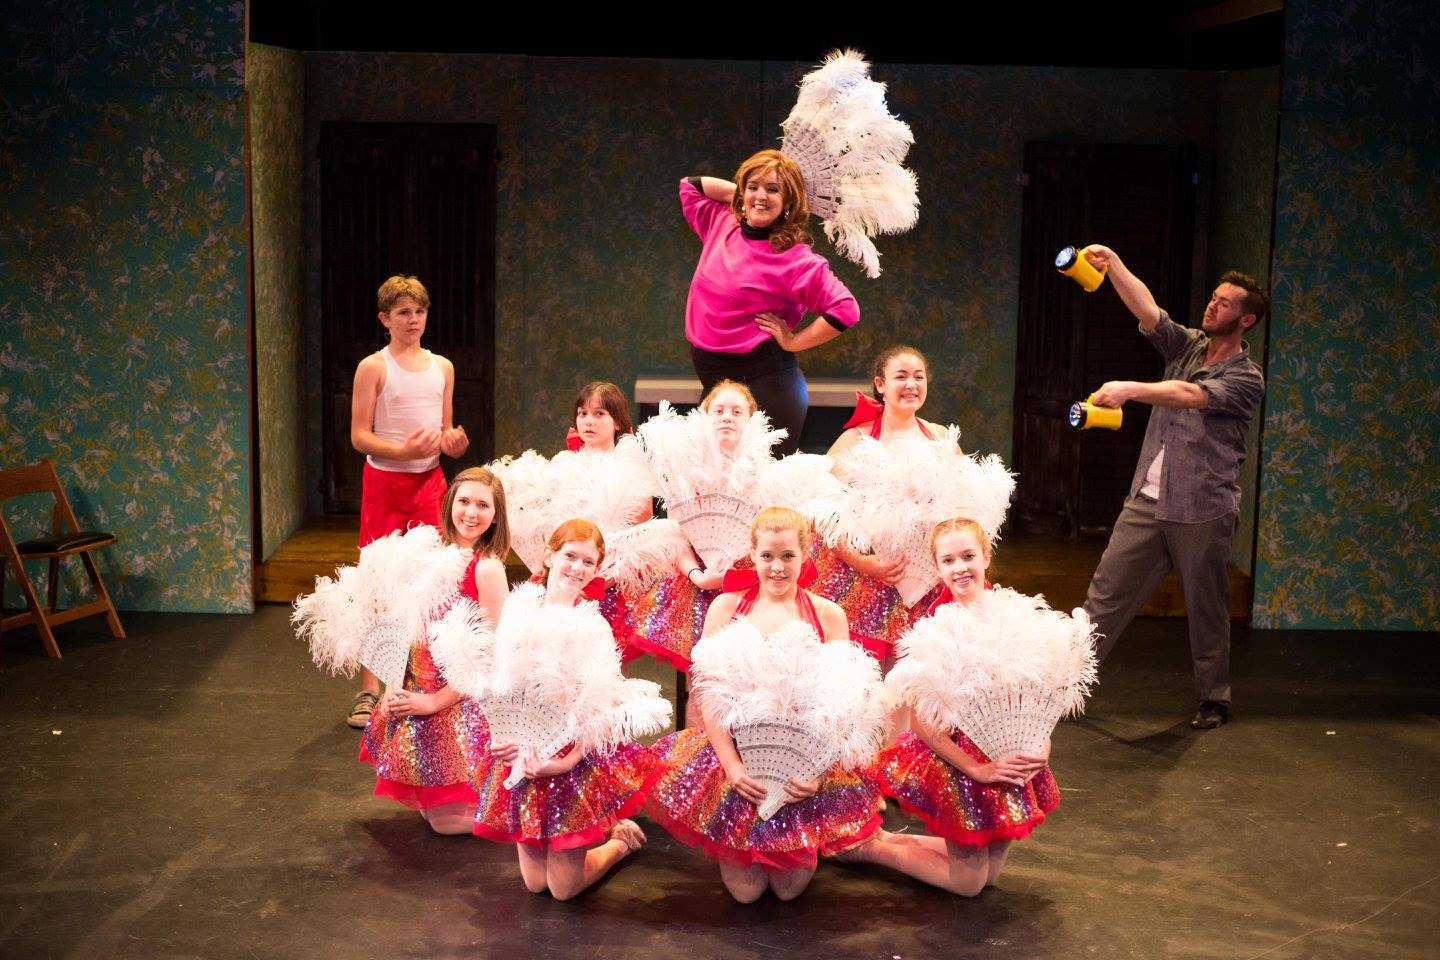 Ford Mirowski (Billy), Sally Trtan (Mrs. Wilkinson), Sean Patrick Rooney (Mr. Braithwaite) & the Ballet Girls